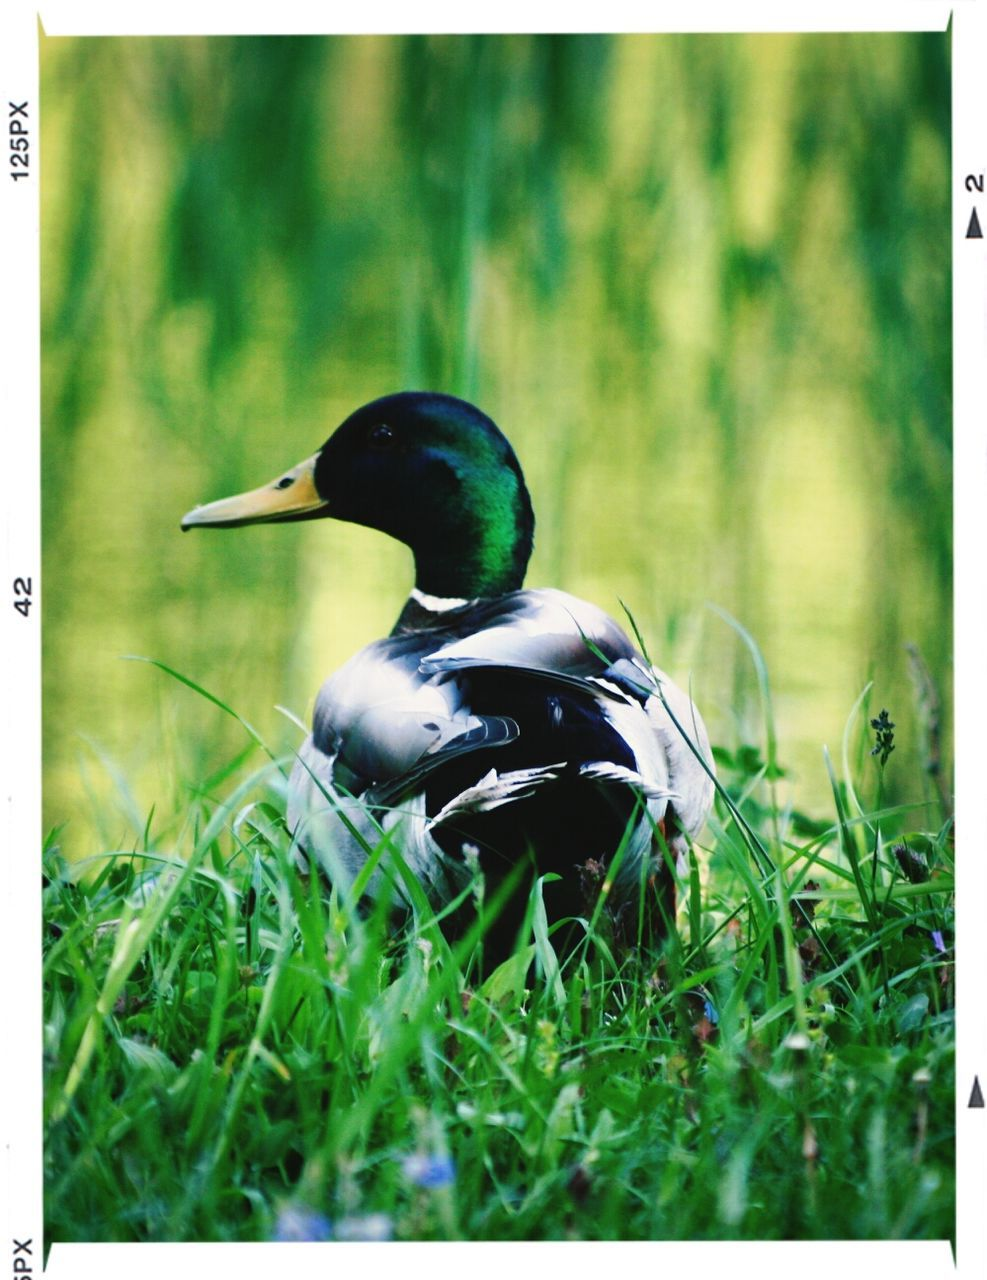 animal themes, animals in the wild, one animal, bird, grass, duck, nature, outdoors, day, beak, focus on foreground, no people, animal wildlife, close-up, beauty in nature